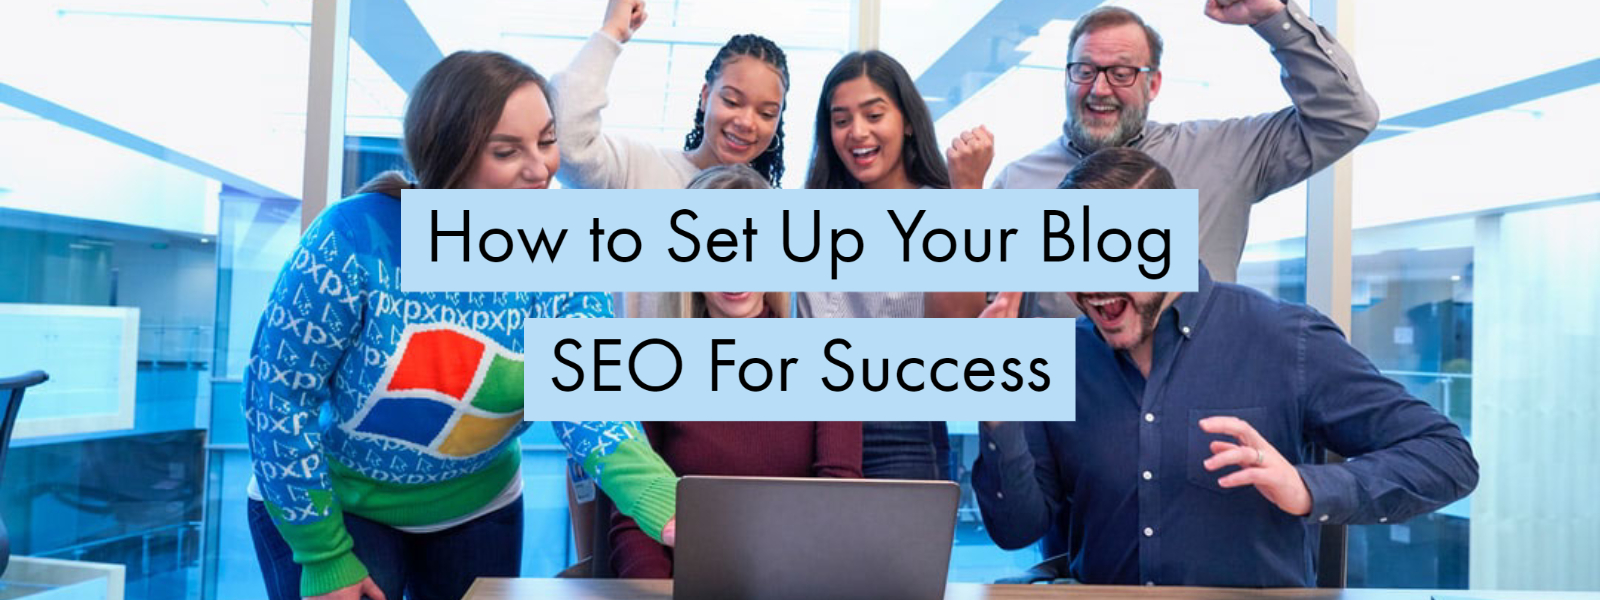 How to Set Up Your Blog SEO For Success